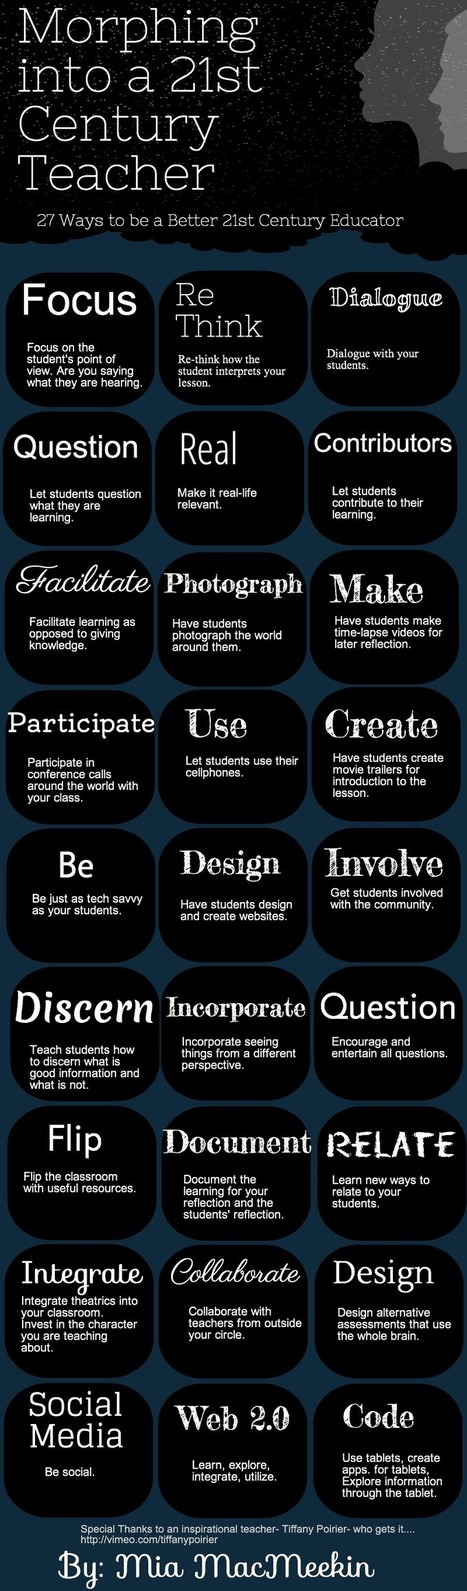 27 Ways To Be A 21st Century Teacher | Brainfri... | Learning in the Age of Information | Scoop.it